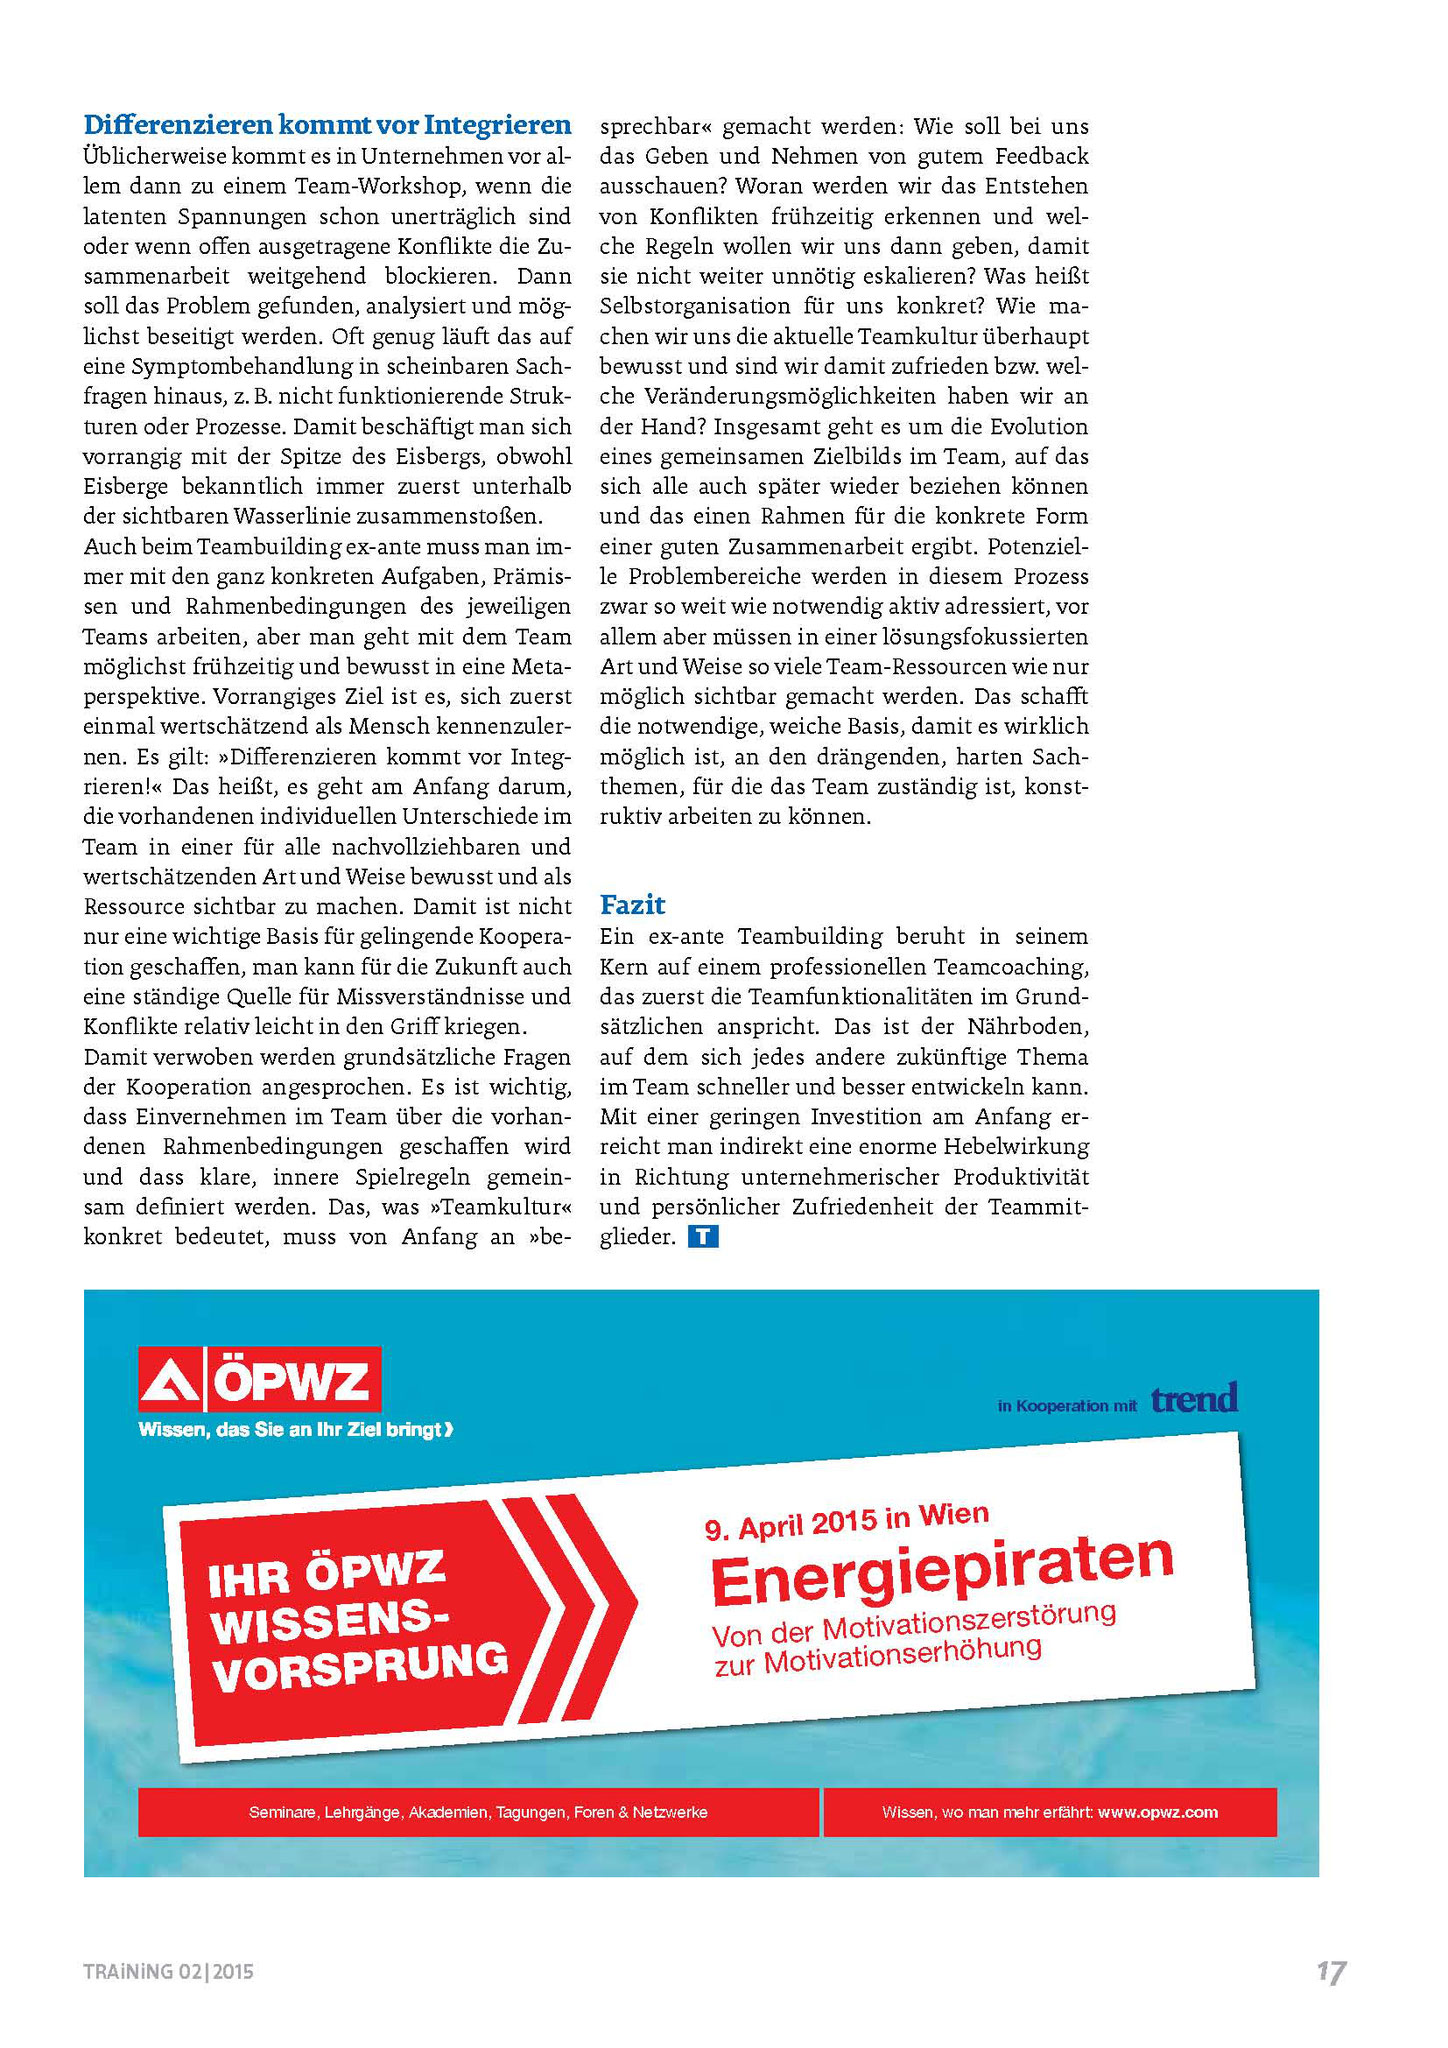 Artikel in TRAiNiNG 02/2015_Seite 2